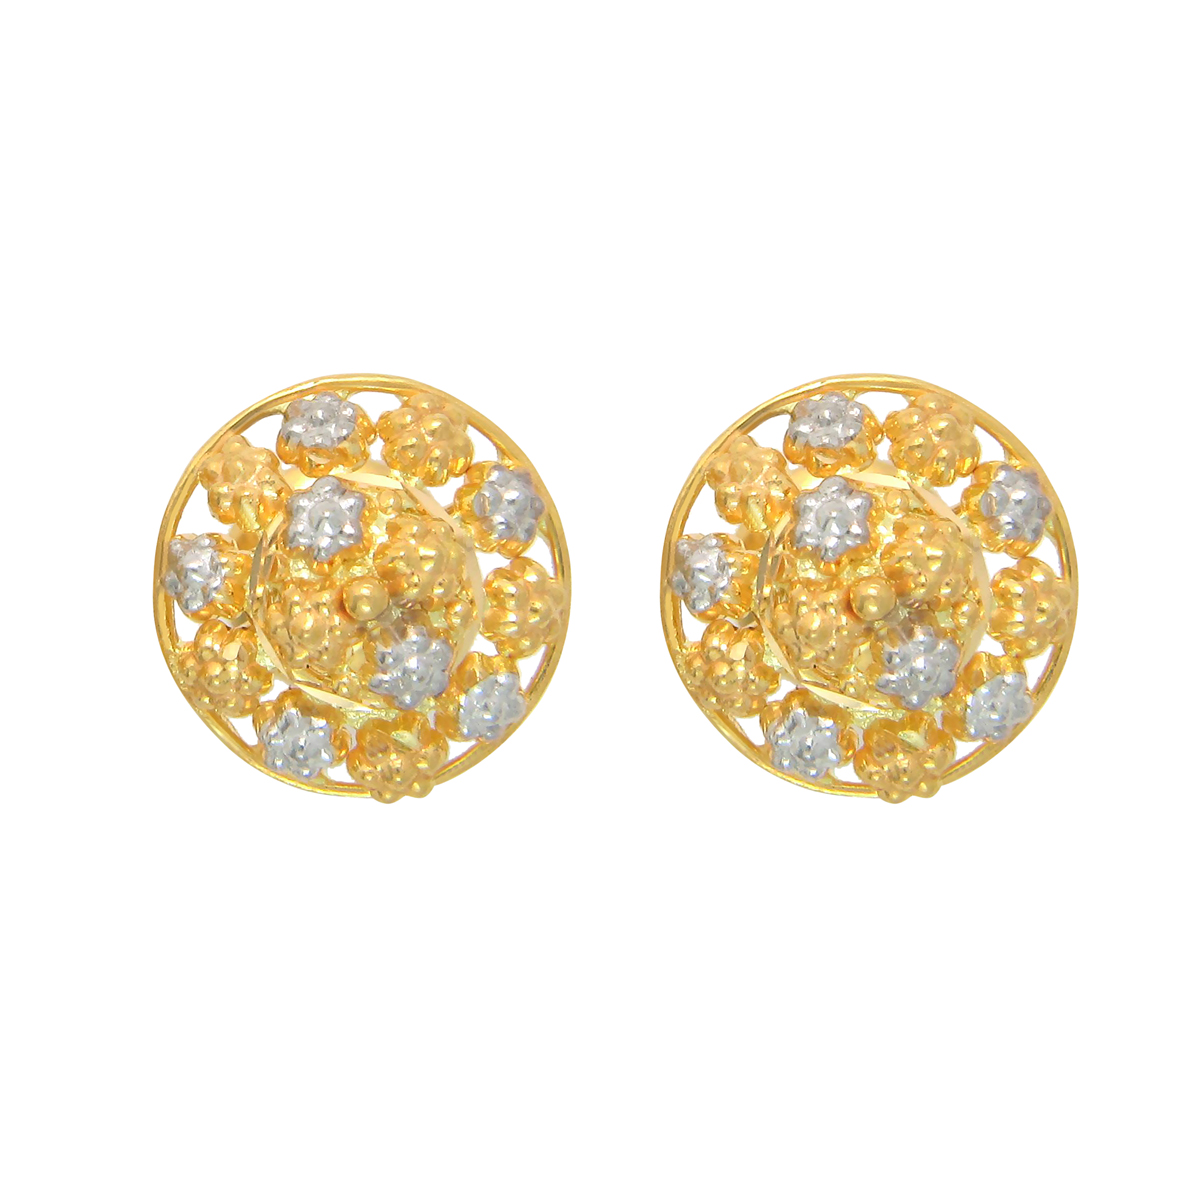 Popley 22Kt Gold Bandhan Earring - A7